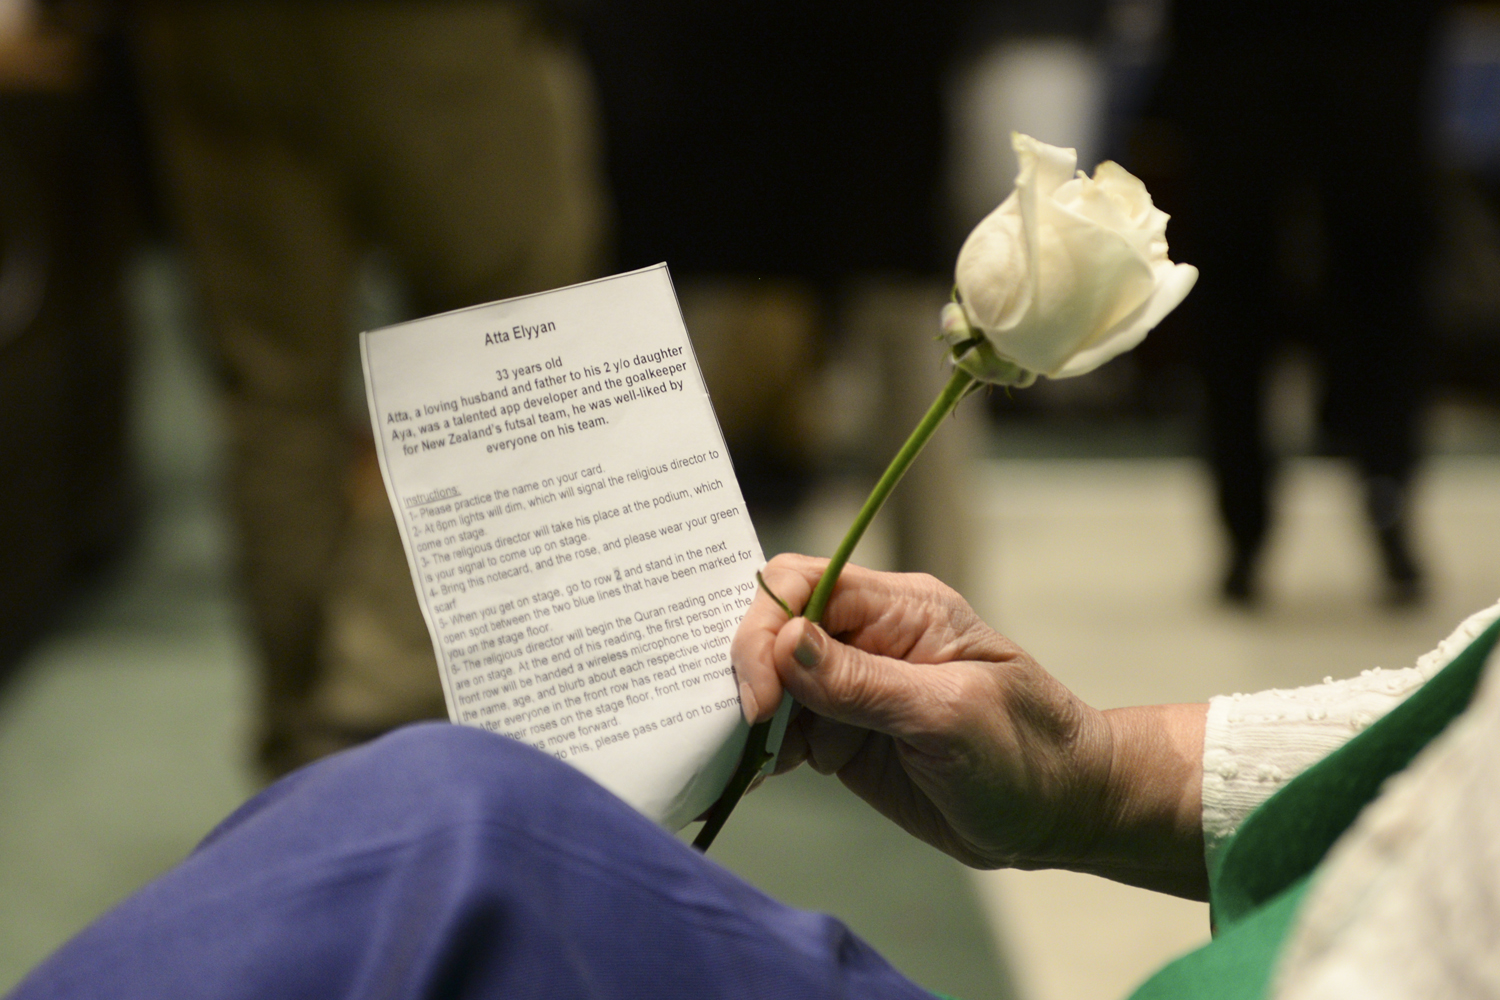 """Rehumanize: A Vigil for Muslims in New Zealand"" began with a ceremony of 50 volunteers going on stage, each holding a white rose to represent one of the victims from the Christchurch shooting."